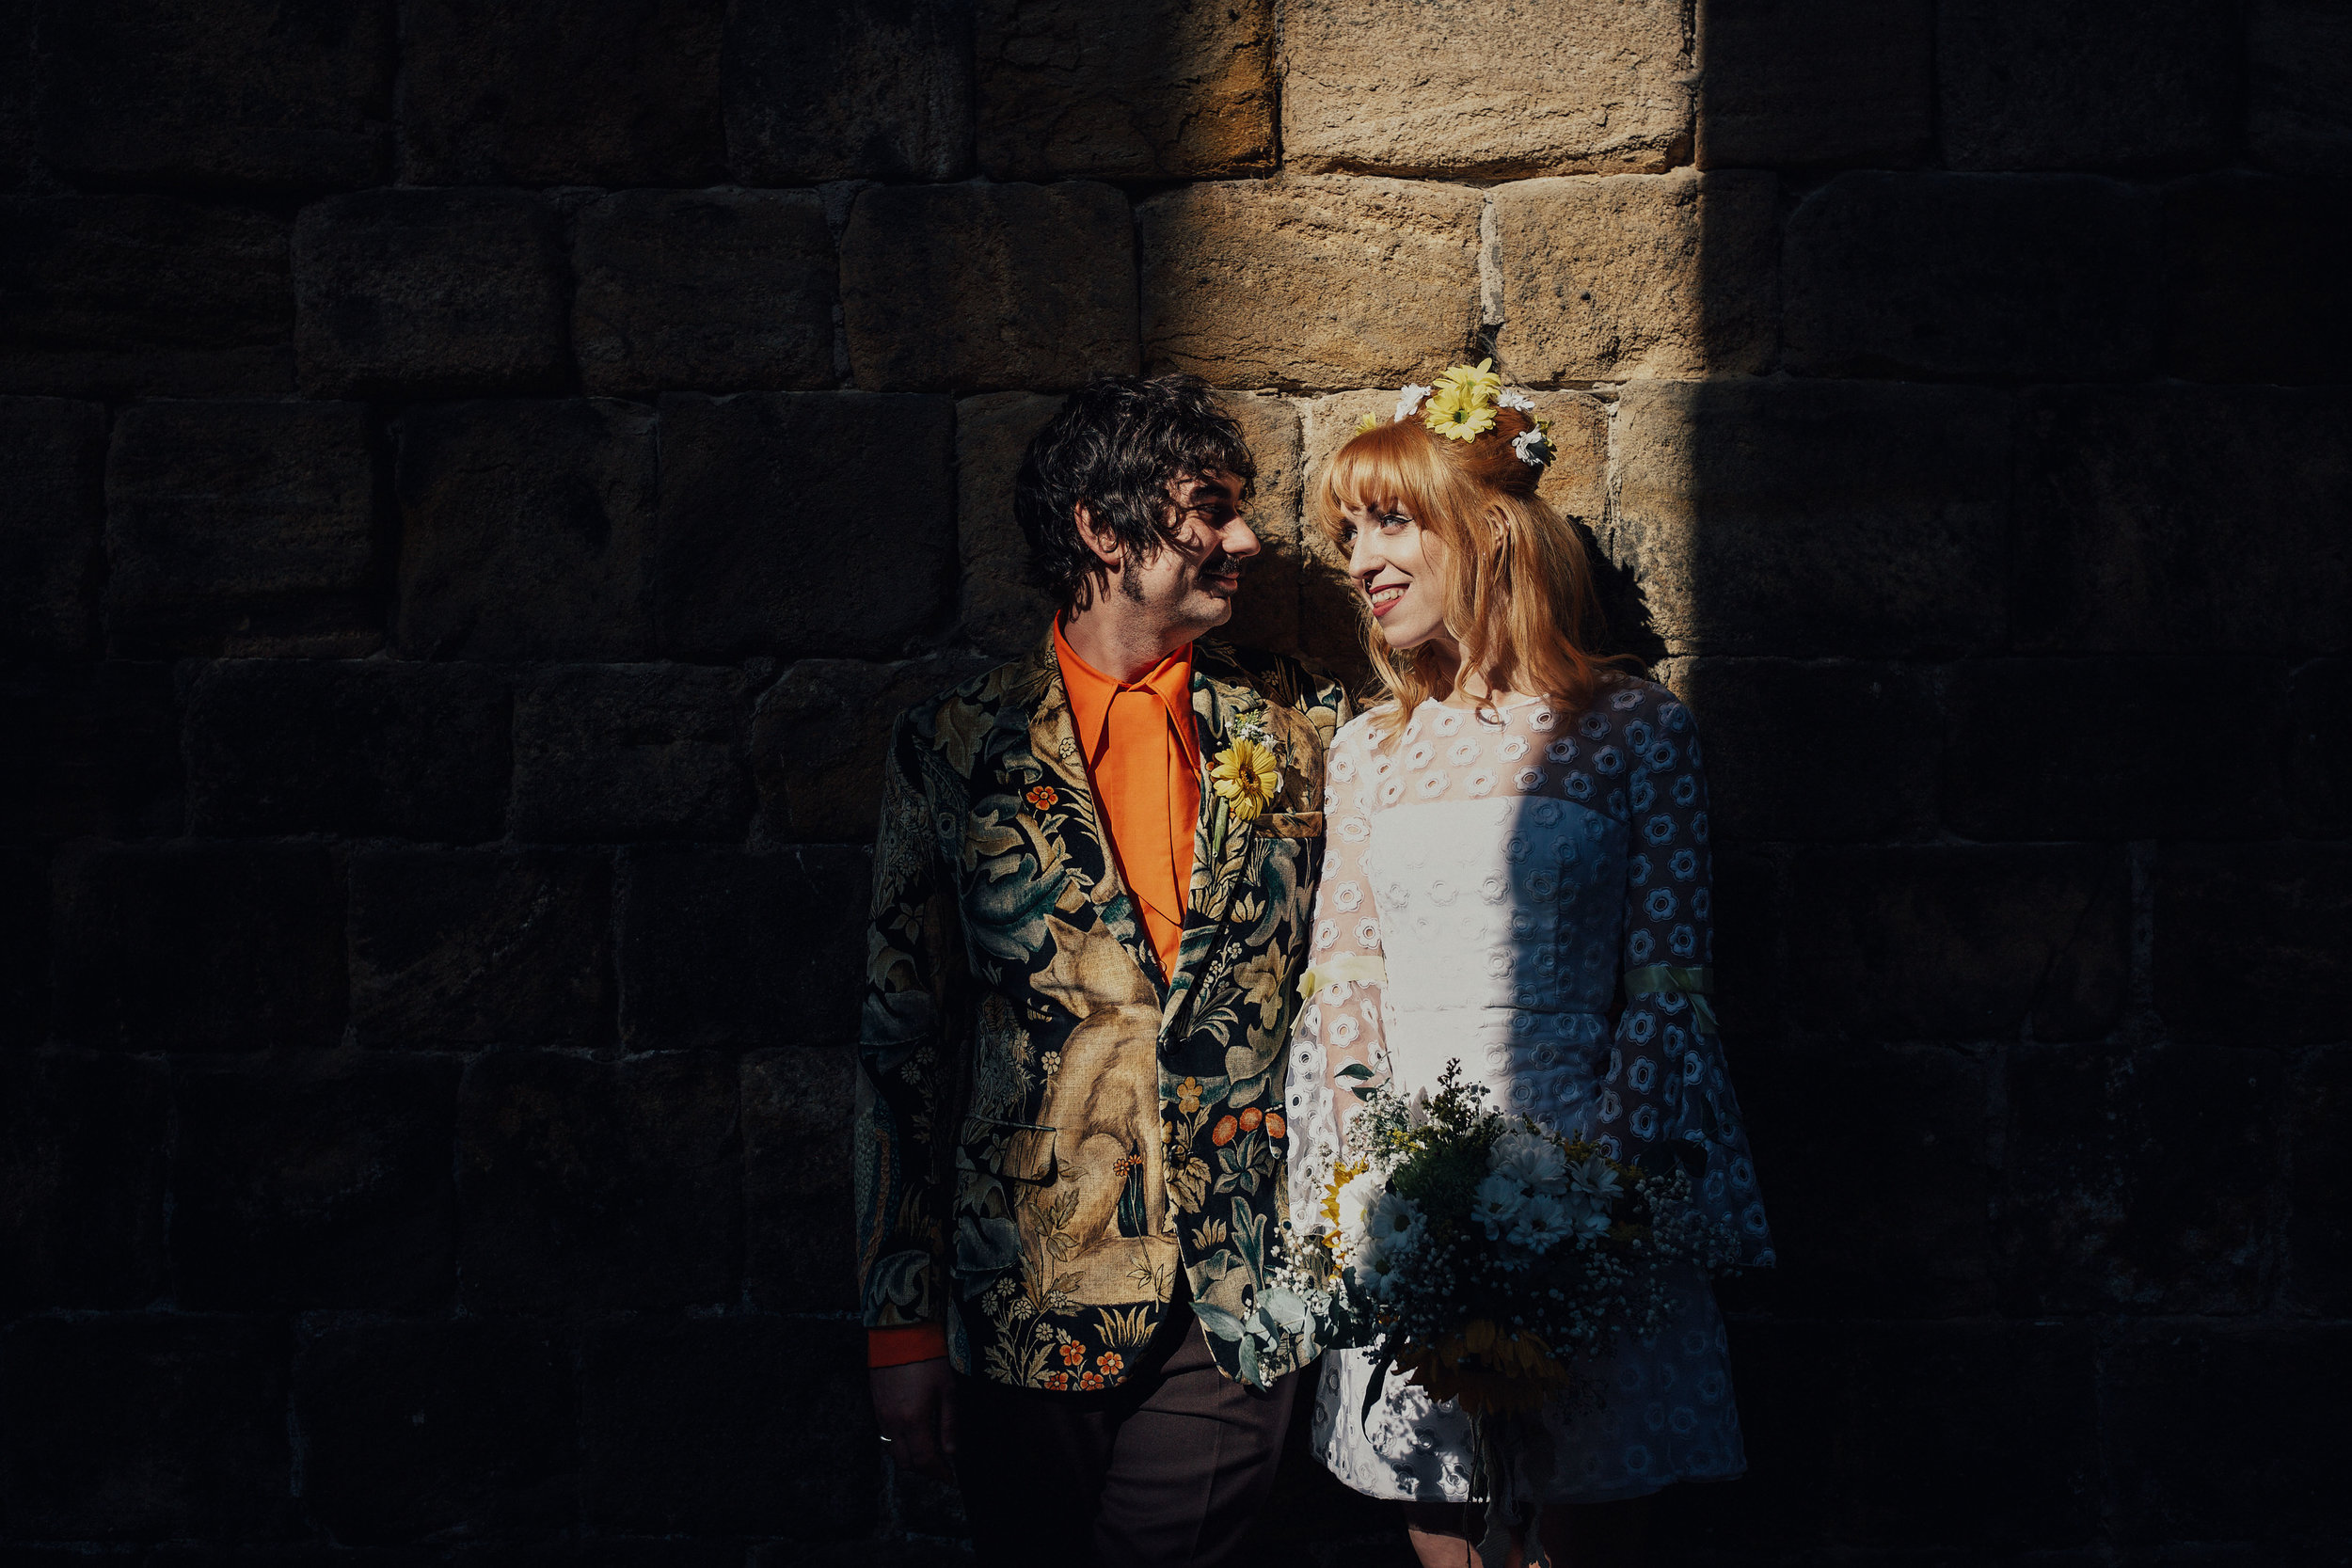 ALTERNATIVE_WEDDING_PHOTOGRAPHY_LEEDS_UK_PJ_PHILLIPS_PHOTOGRAPHY_99.jpg